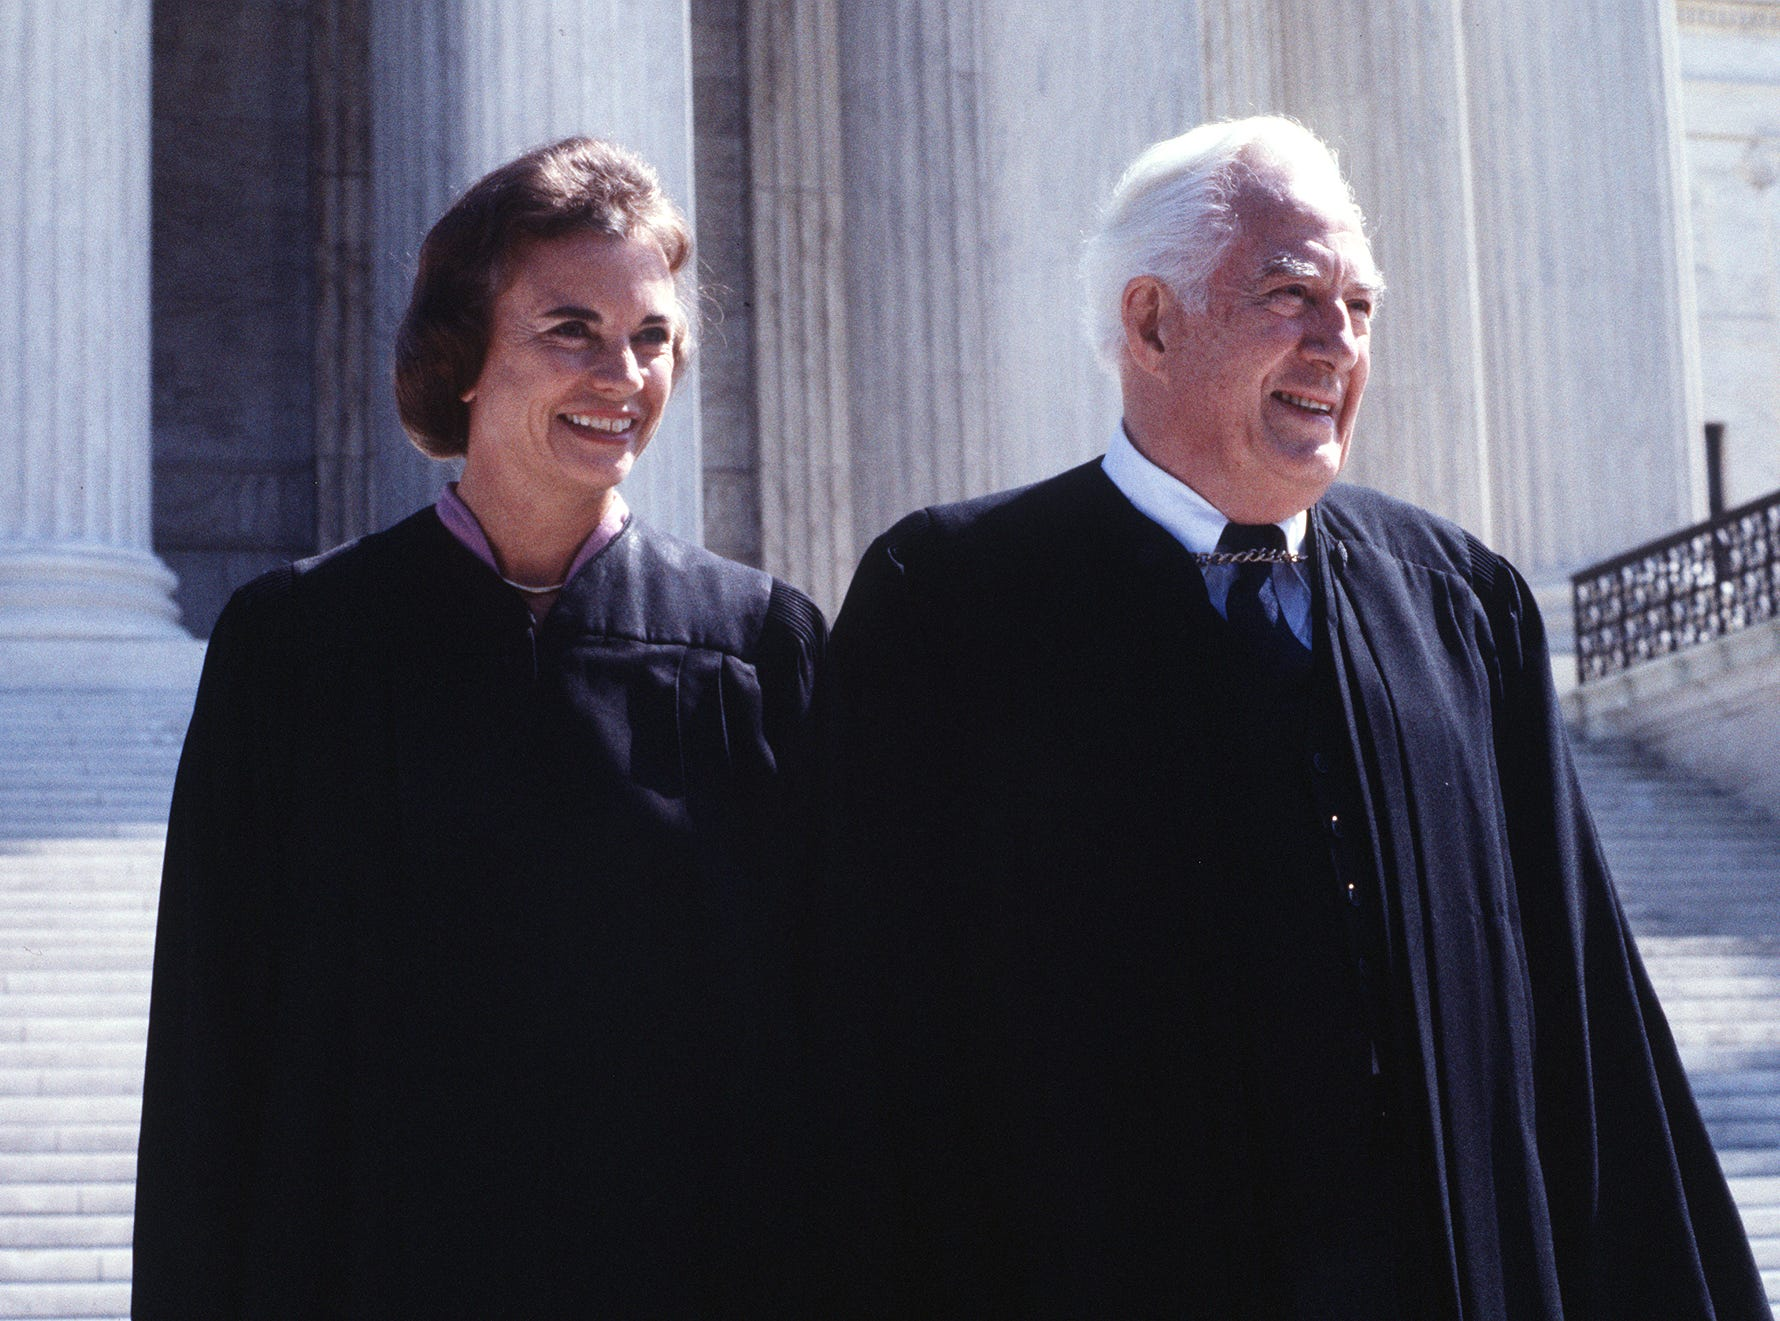 Supreme Court Associate Justice Sandra Day O'Connor poses with Chief Justice Warren Burger after her swearing in at the Supreme Court in Washington, D.C. Sept. 25, 1981.